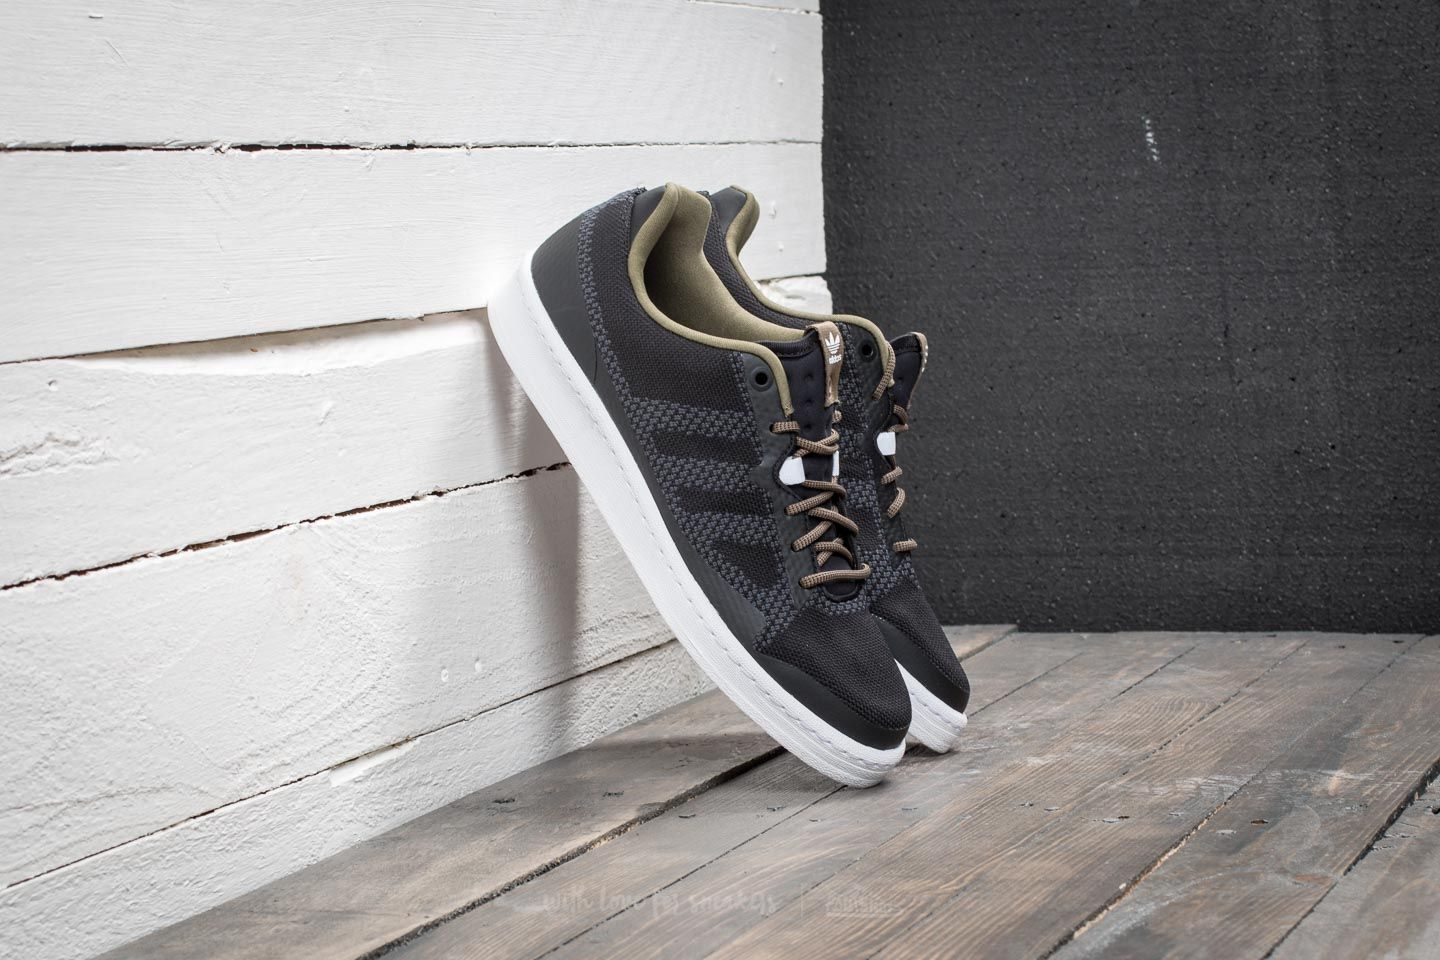 adidas Campus 80s Agravic Primeknit Nors